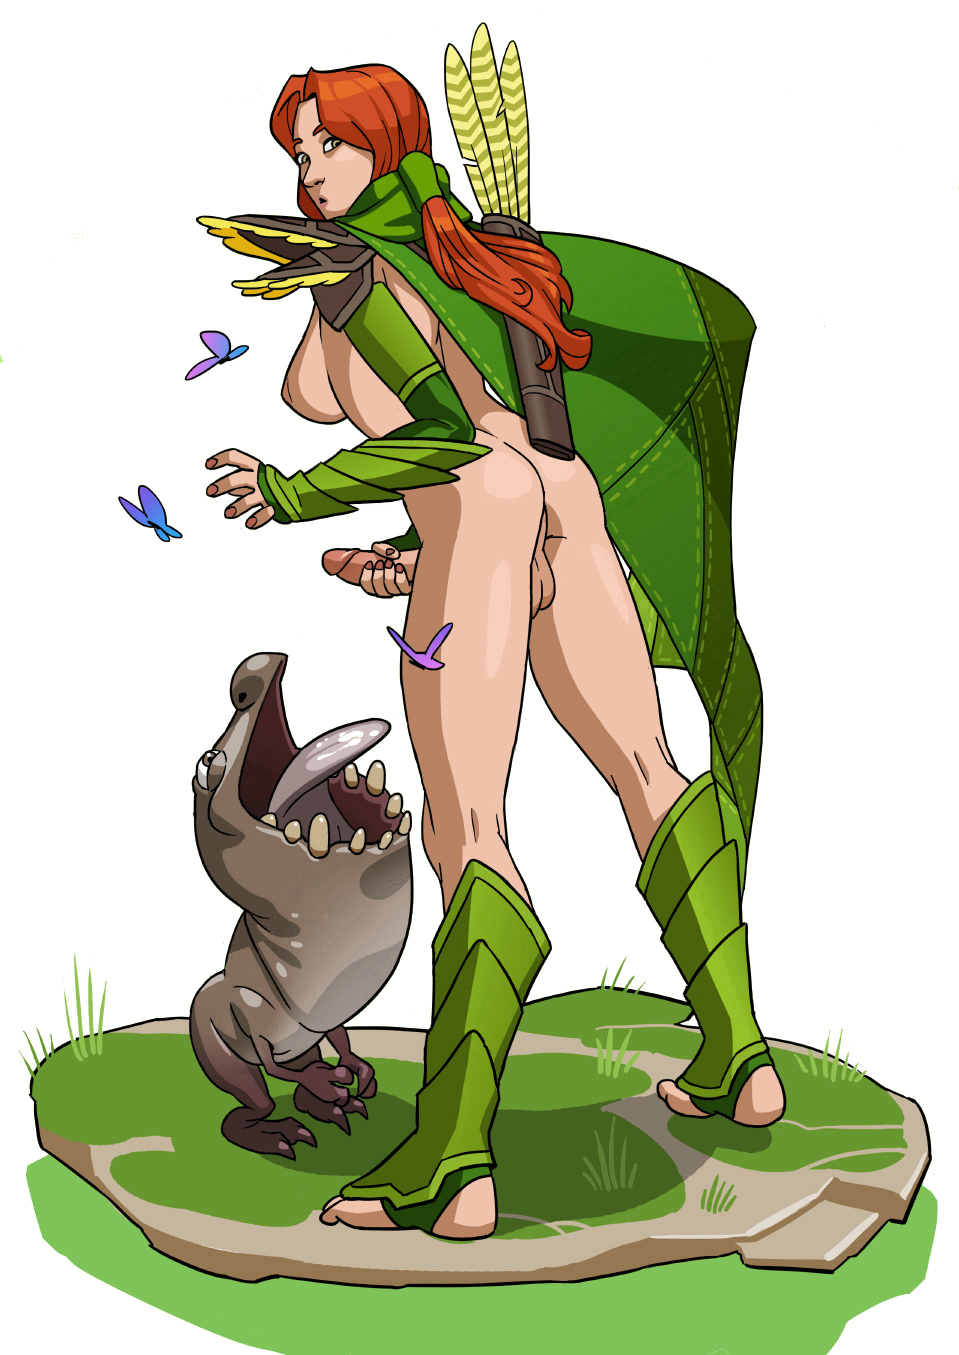 Dota 2 windrunner hentai erotic comic